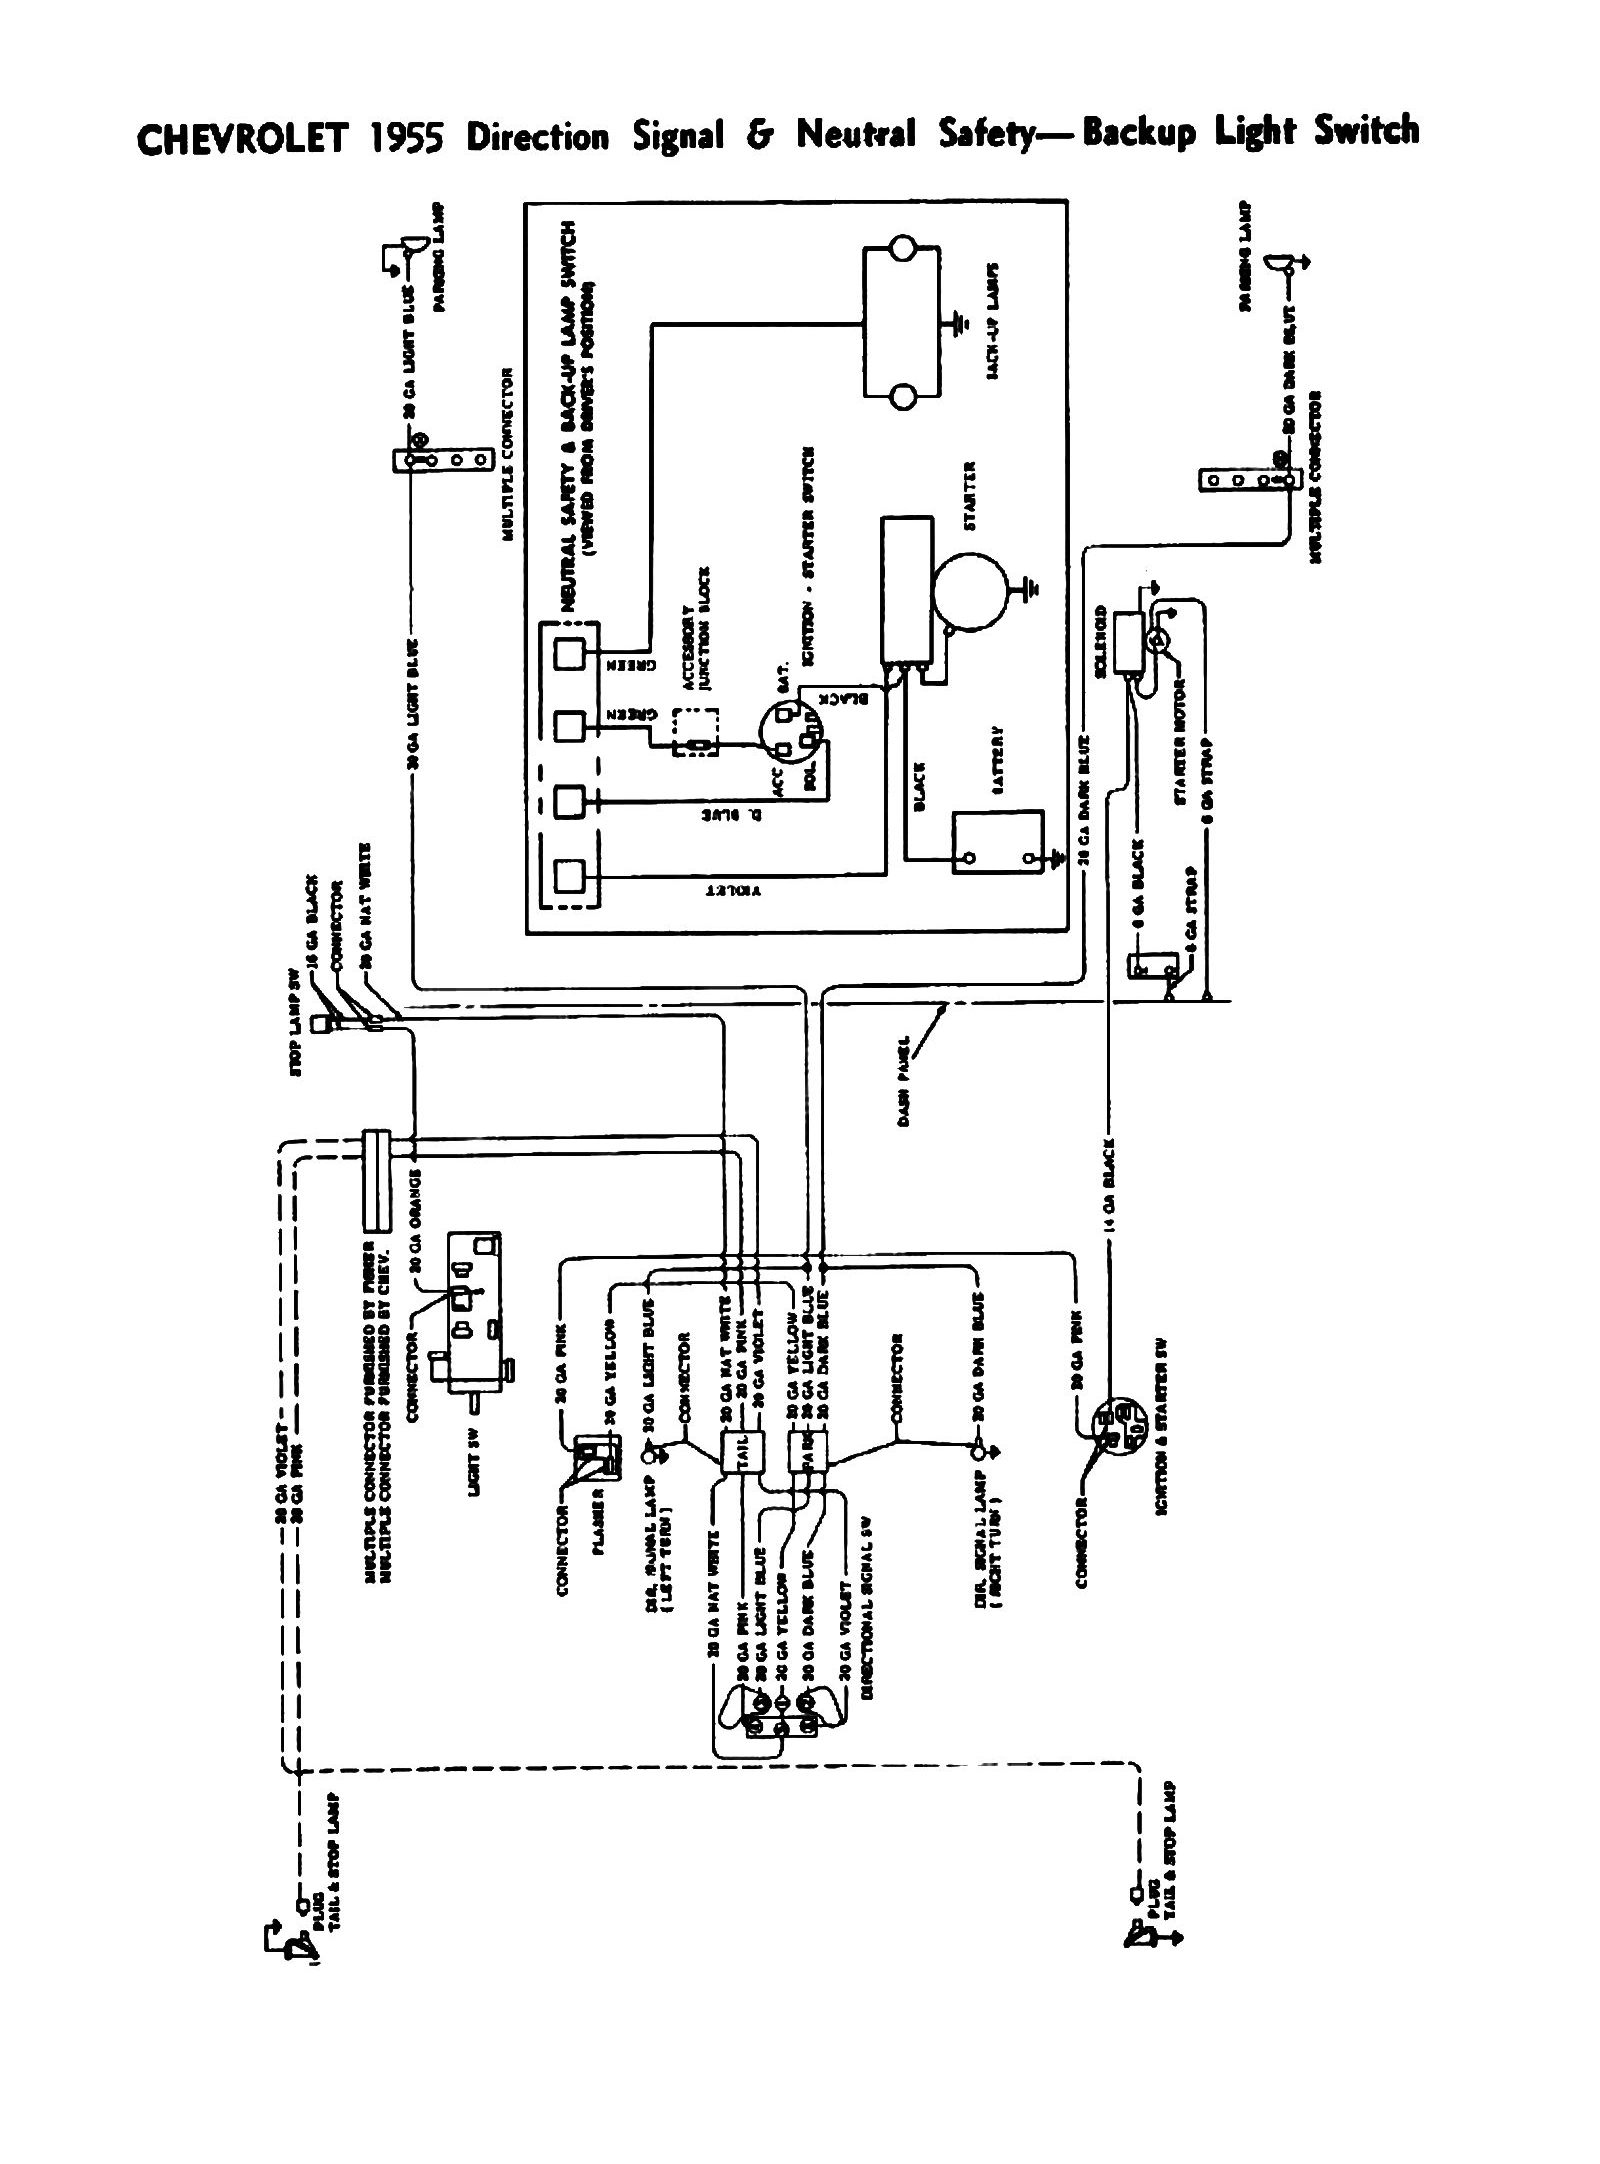 1953 Chevy Truck Wiring Diagram Third Level 12 Volt Solenoid 1952 F1 Help Ford Enthusiasts Turn Signal Universal Ignition Switch